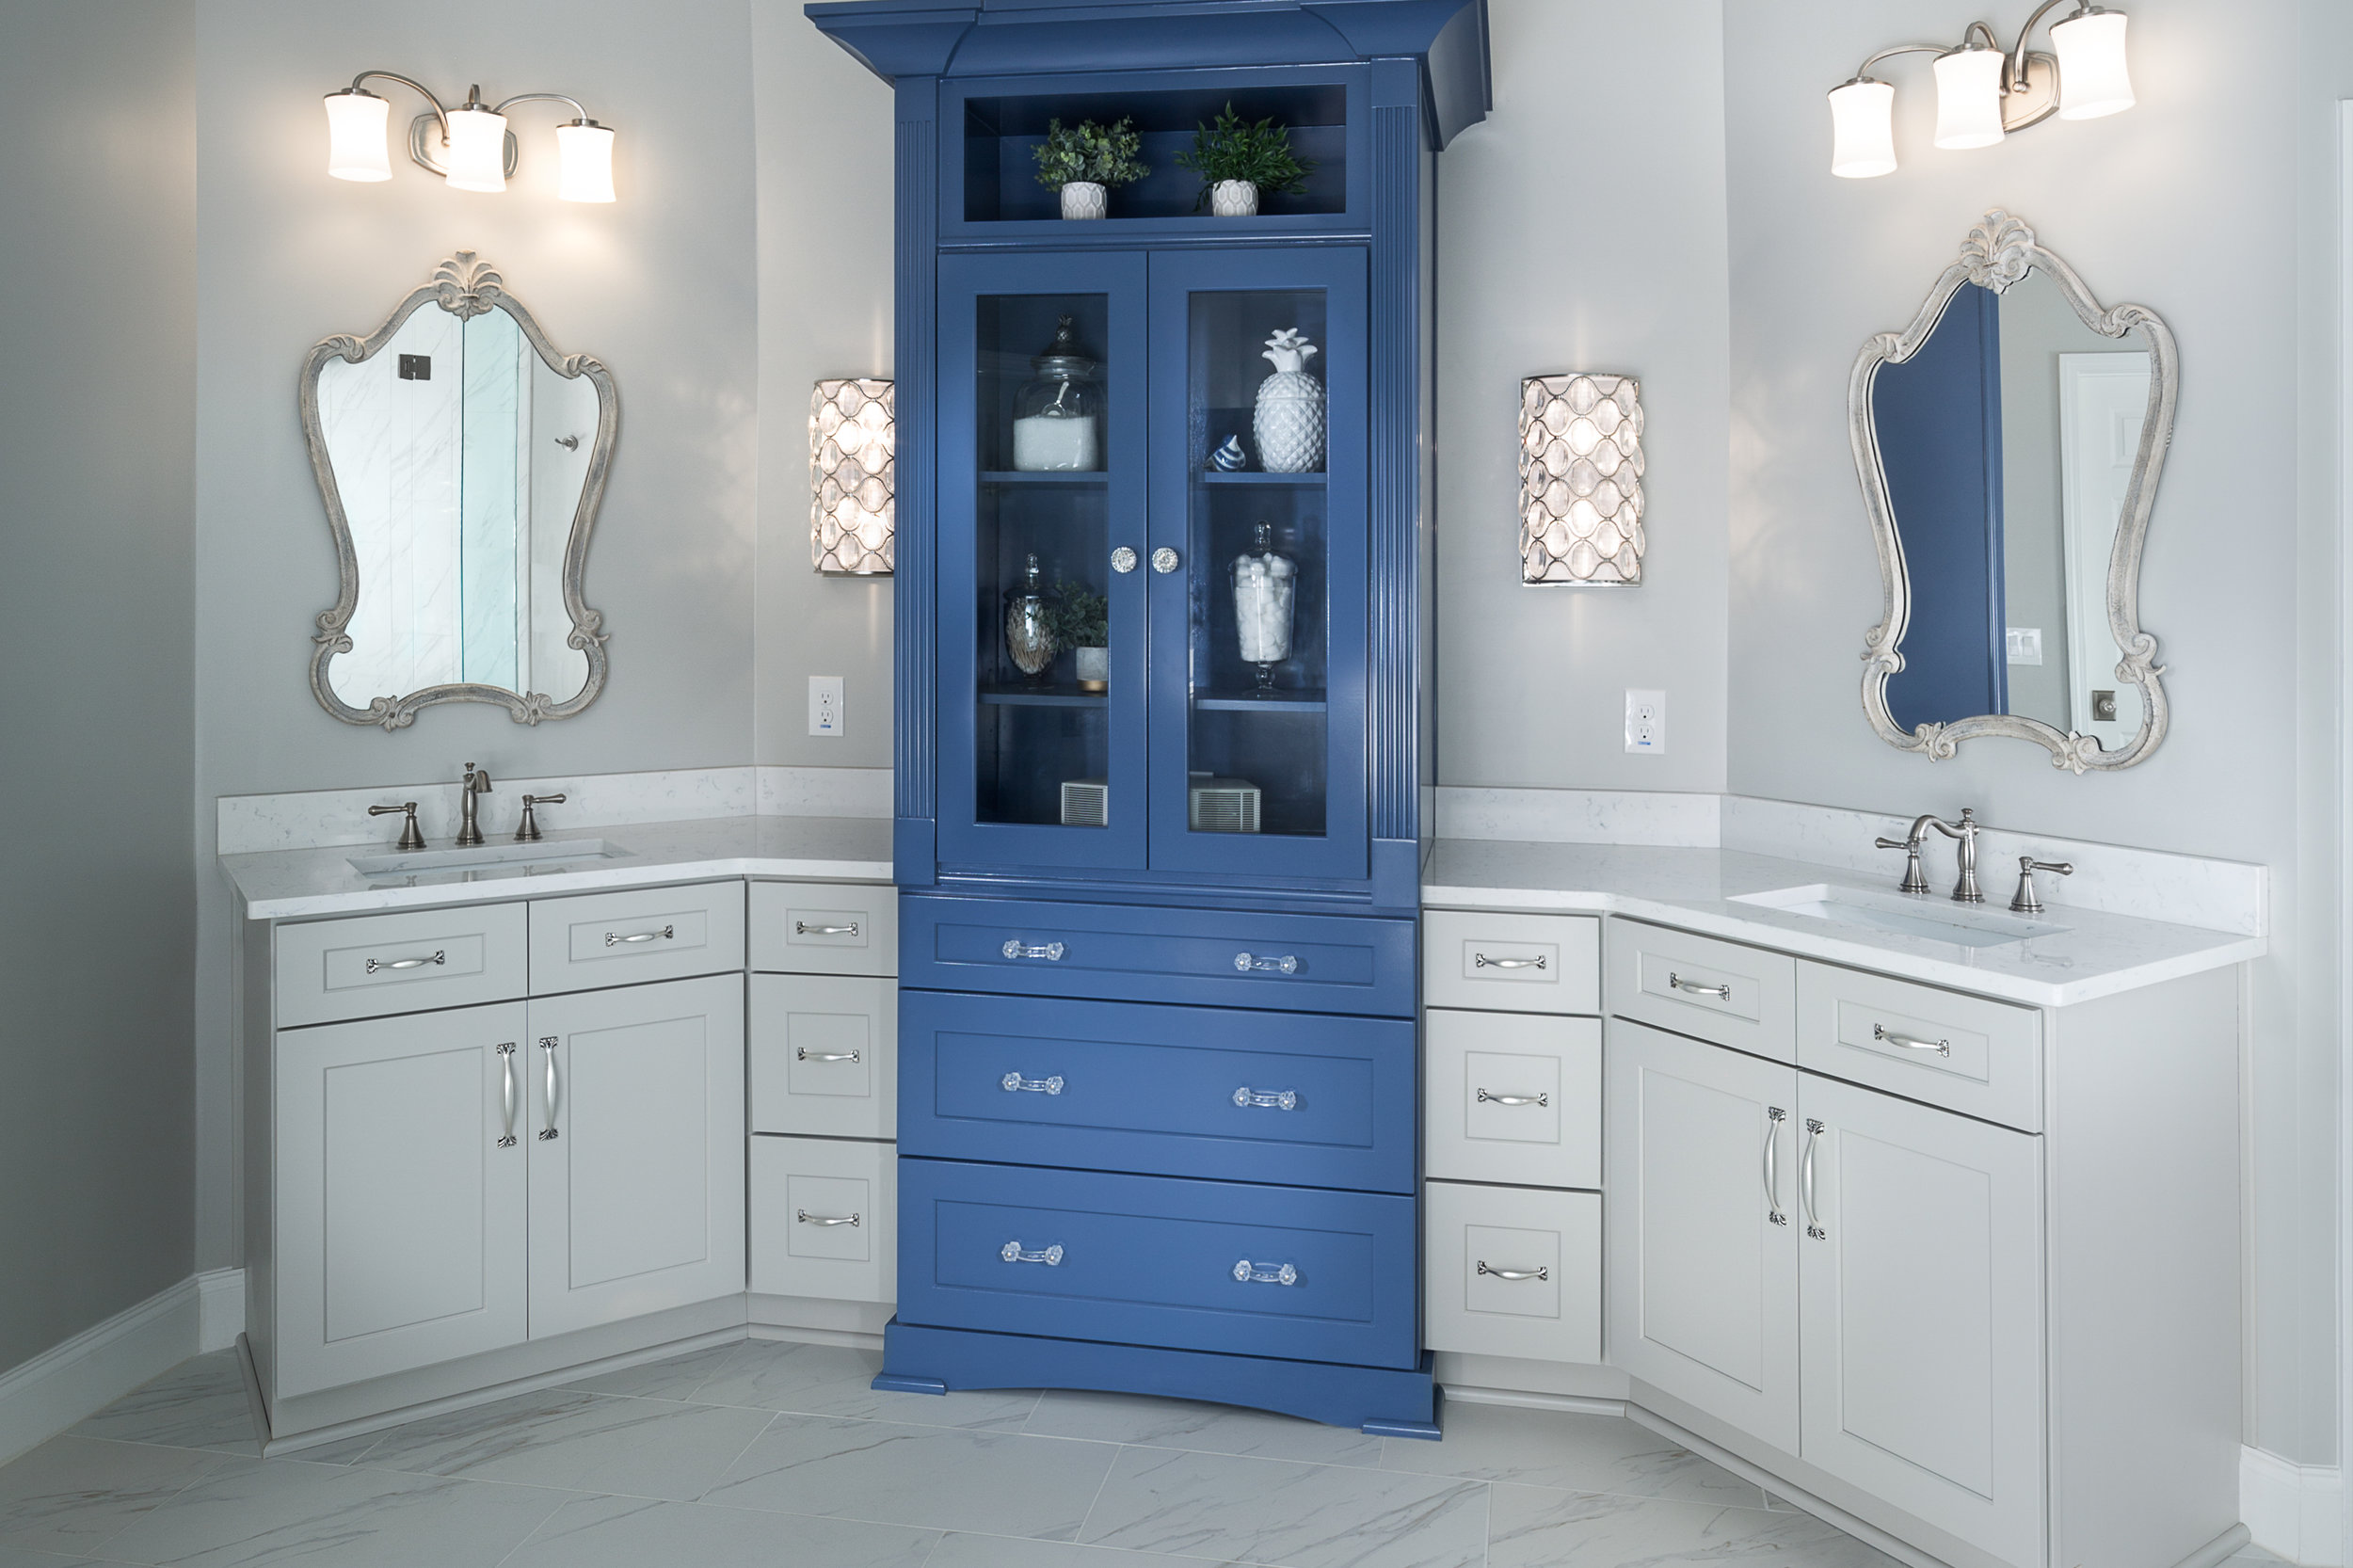 Grey and periwinkle are a great combo for an Owner's Suite. Designed and remodeled by db Atlanta.